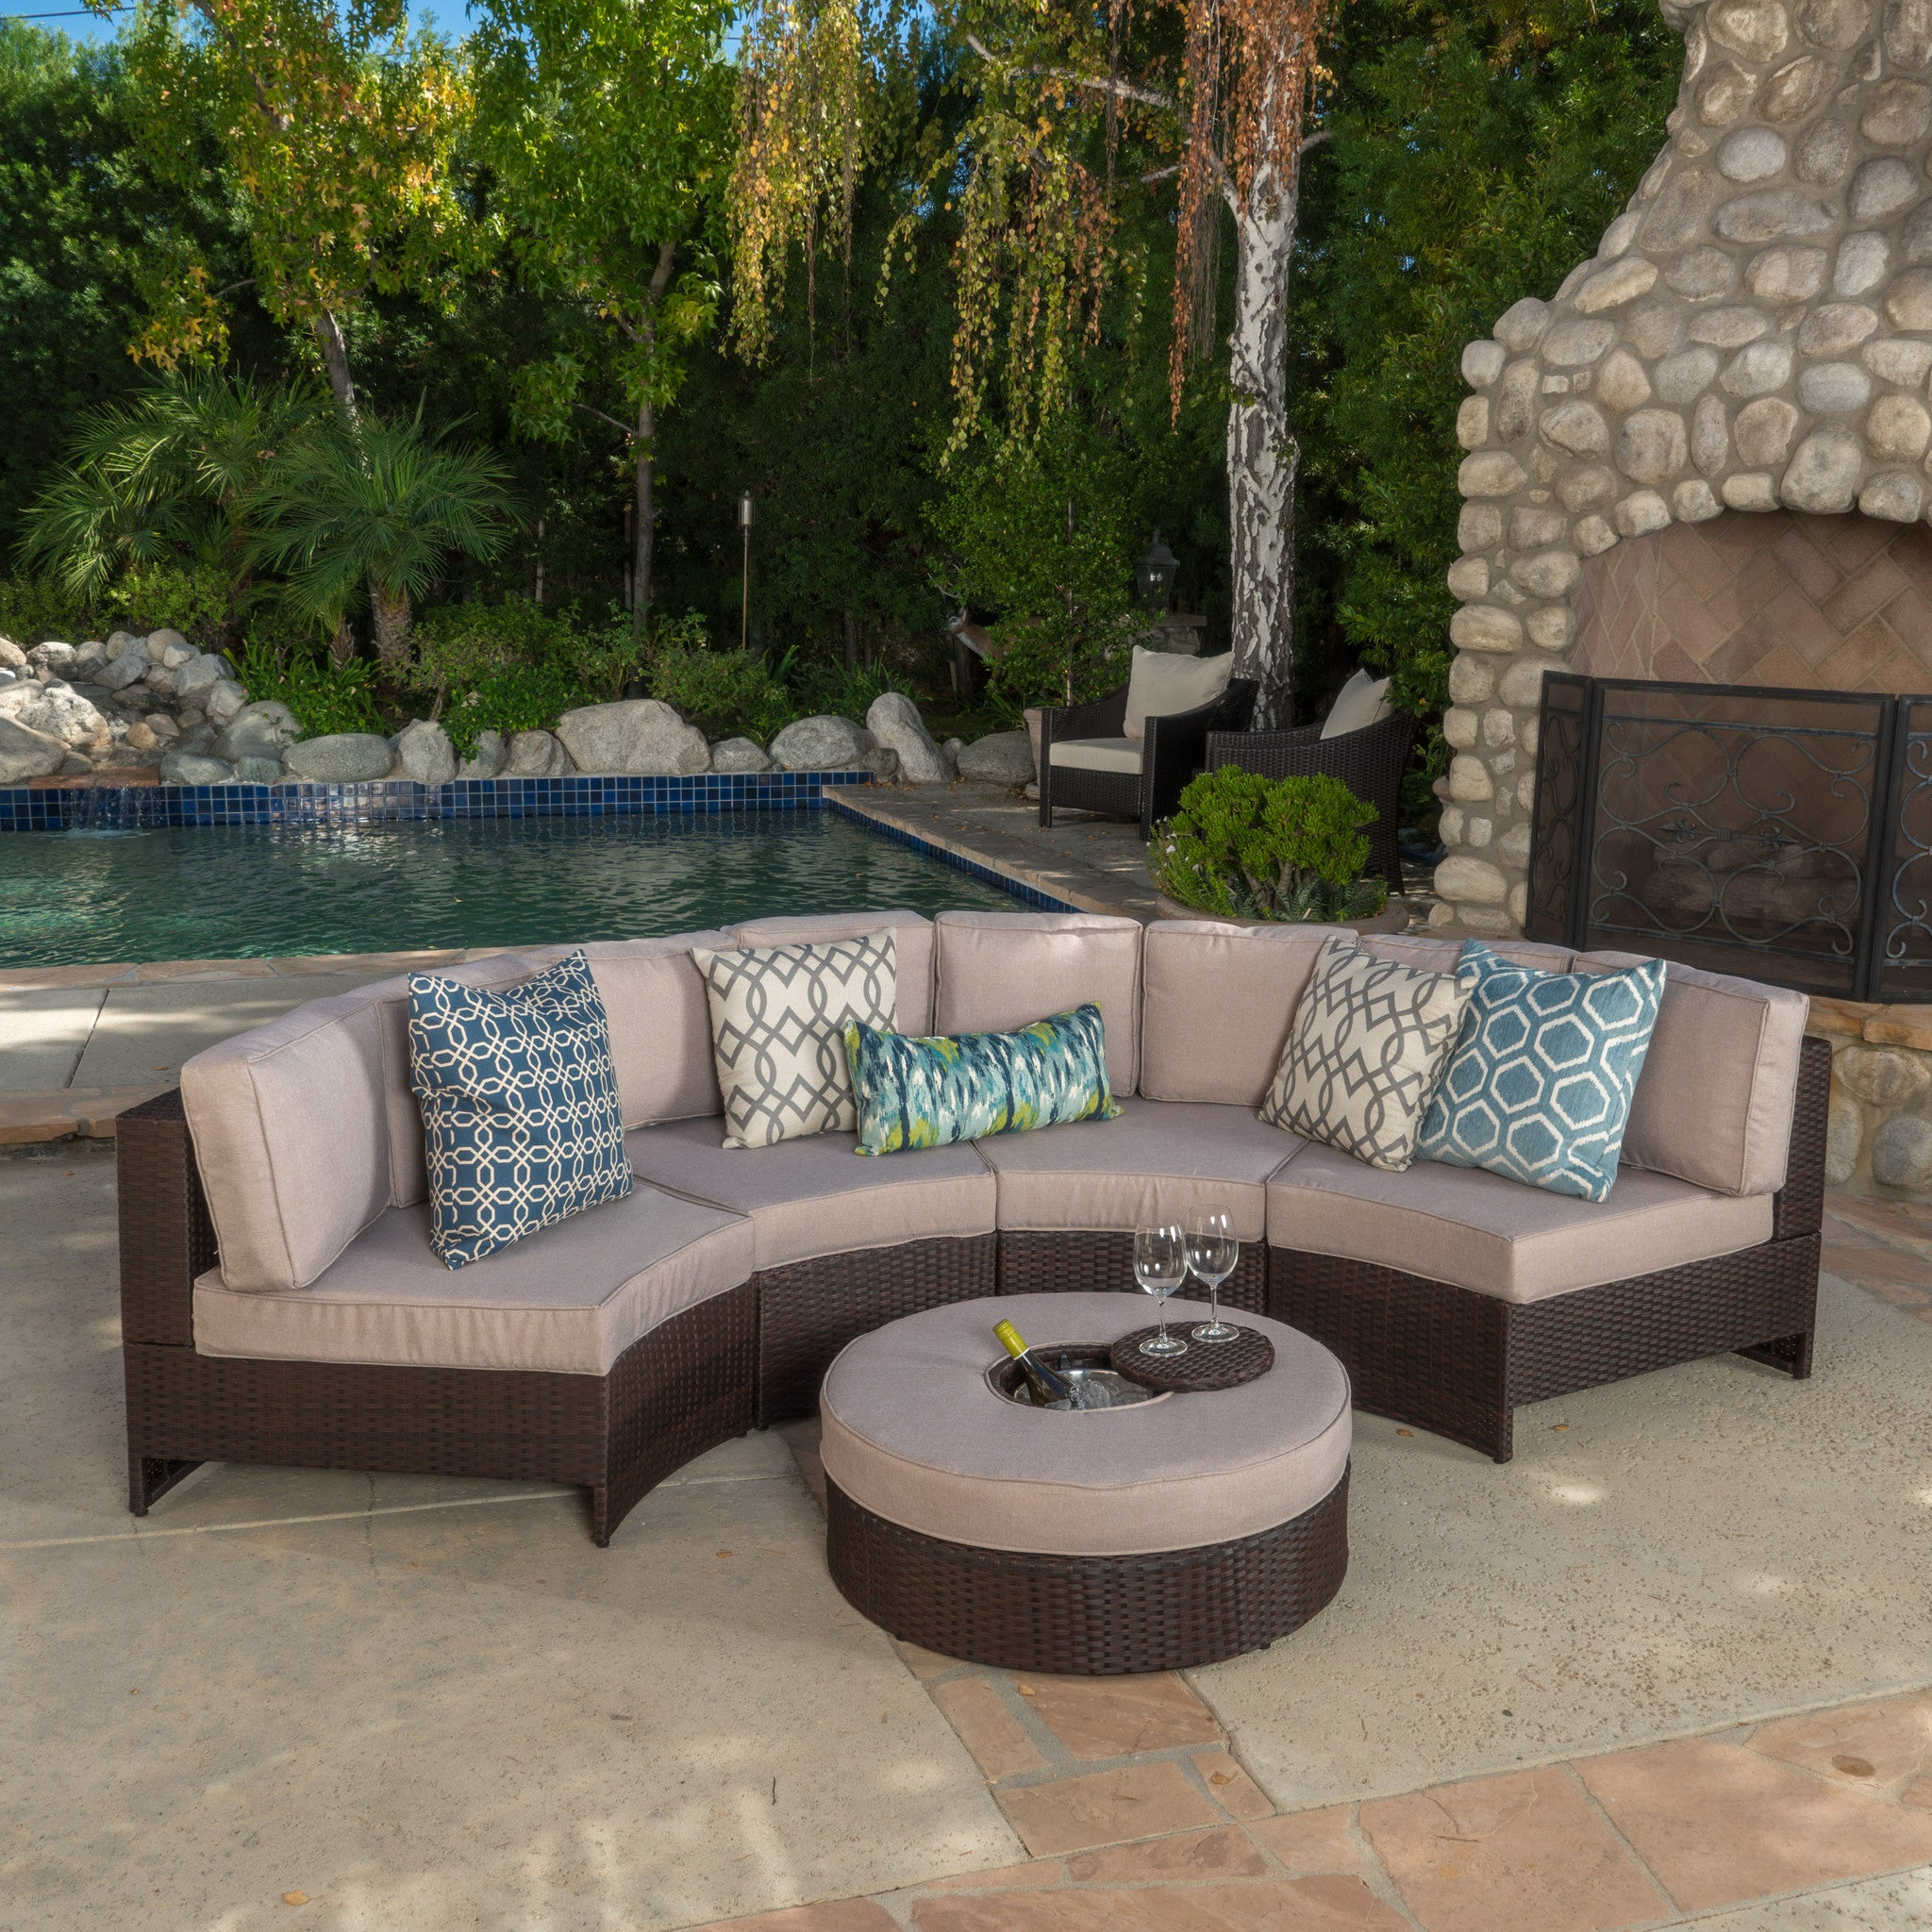 Outdoor Sectional Sofa Set Ice Bucket Ottoman foto